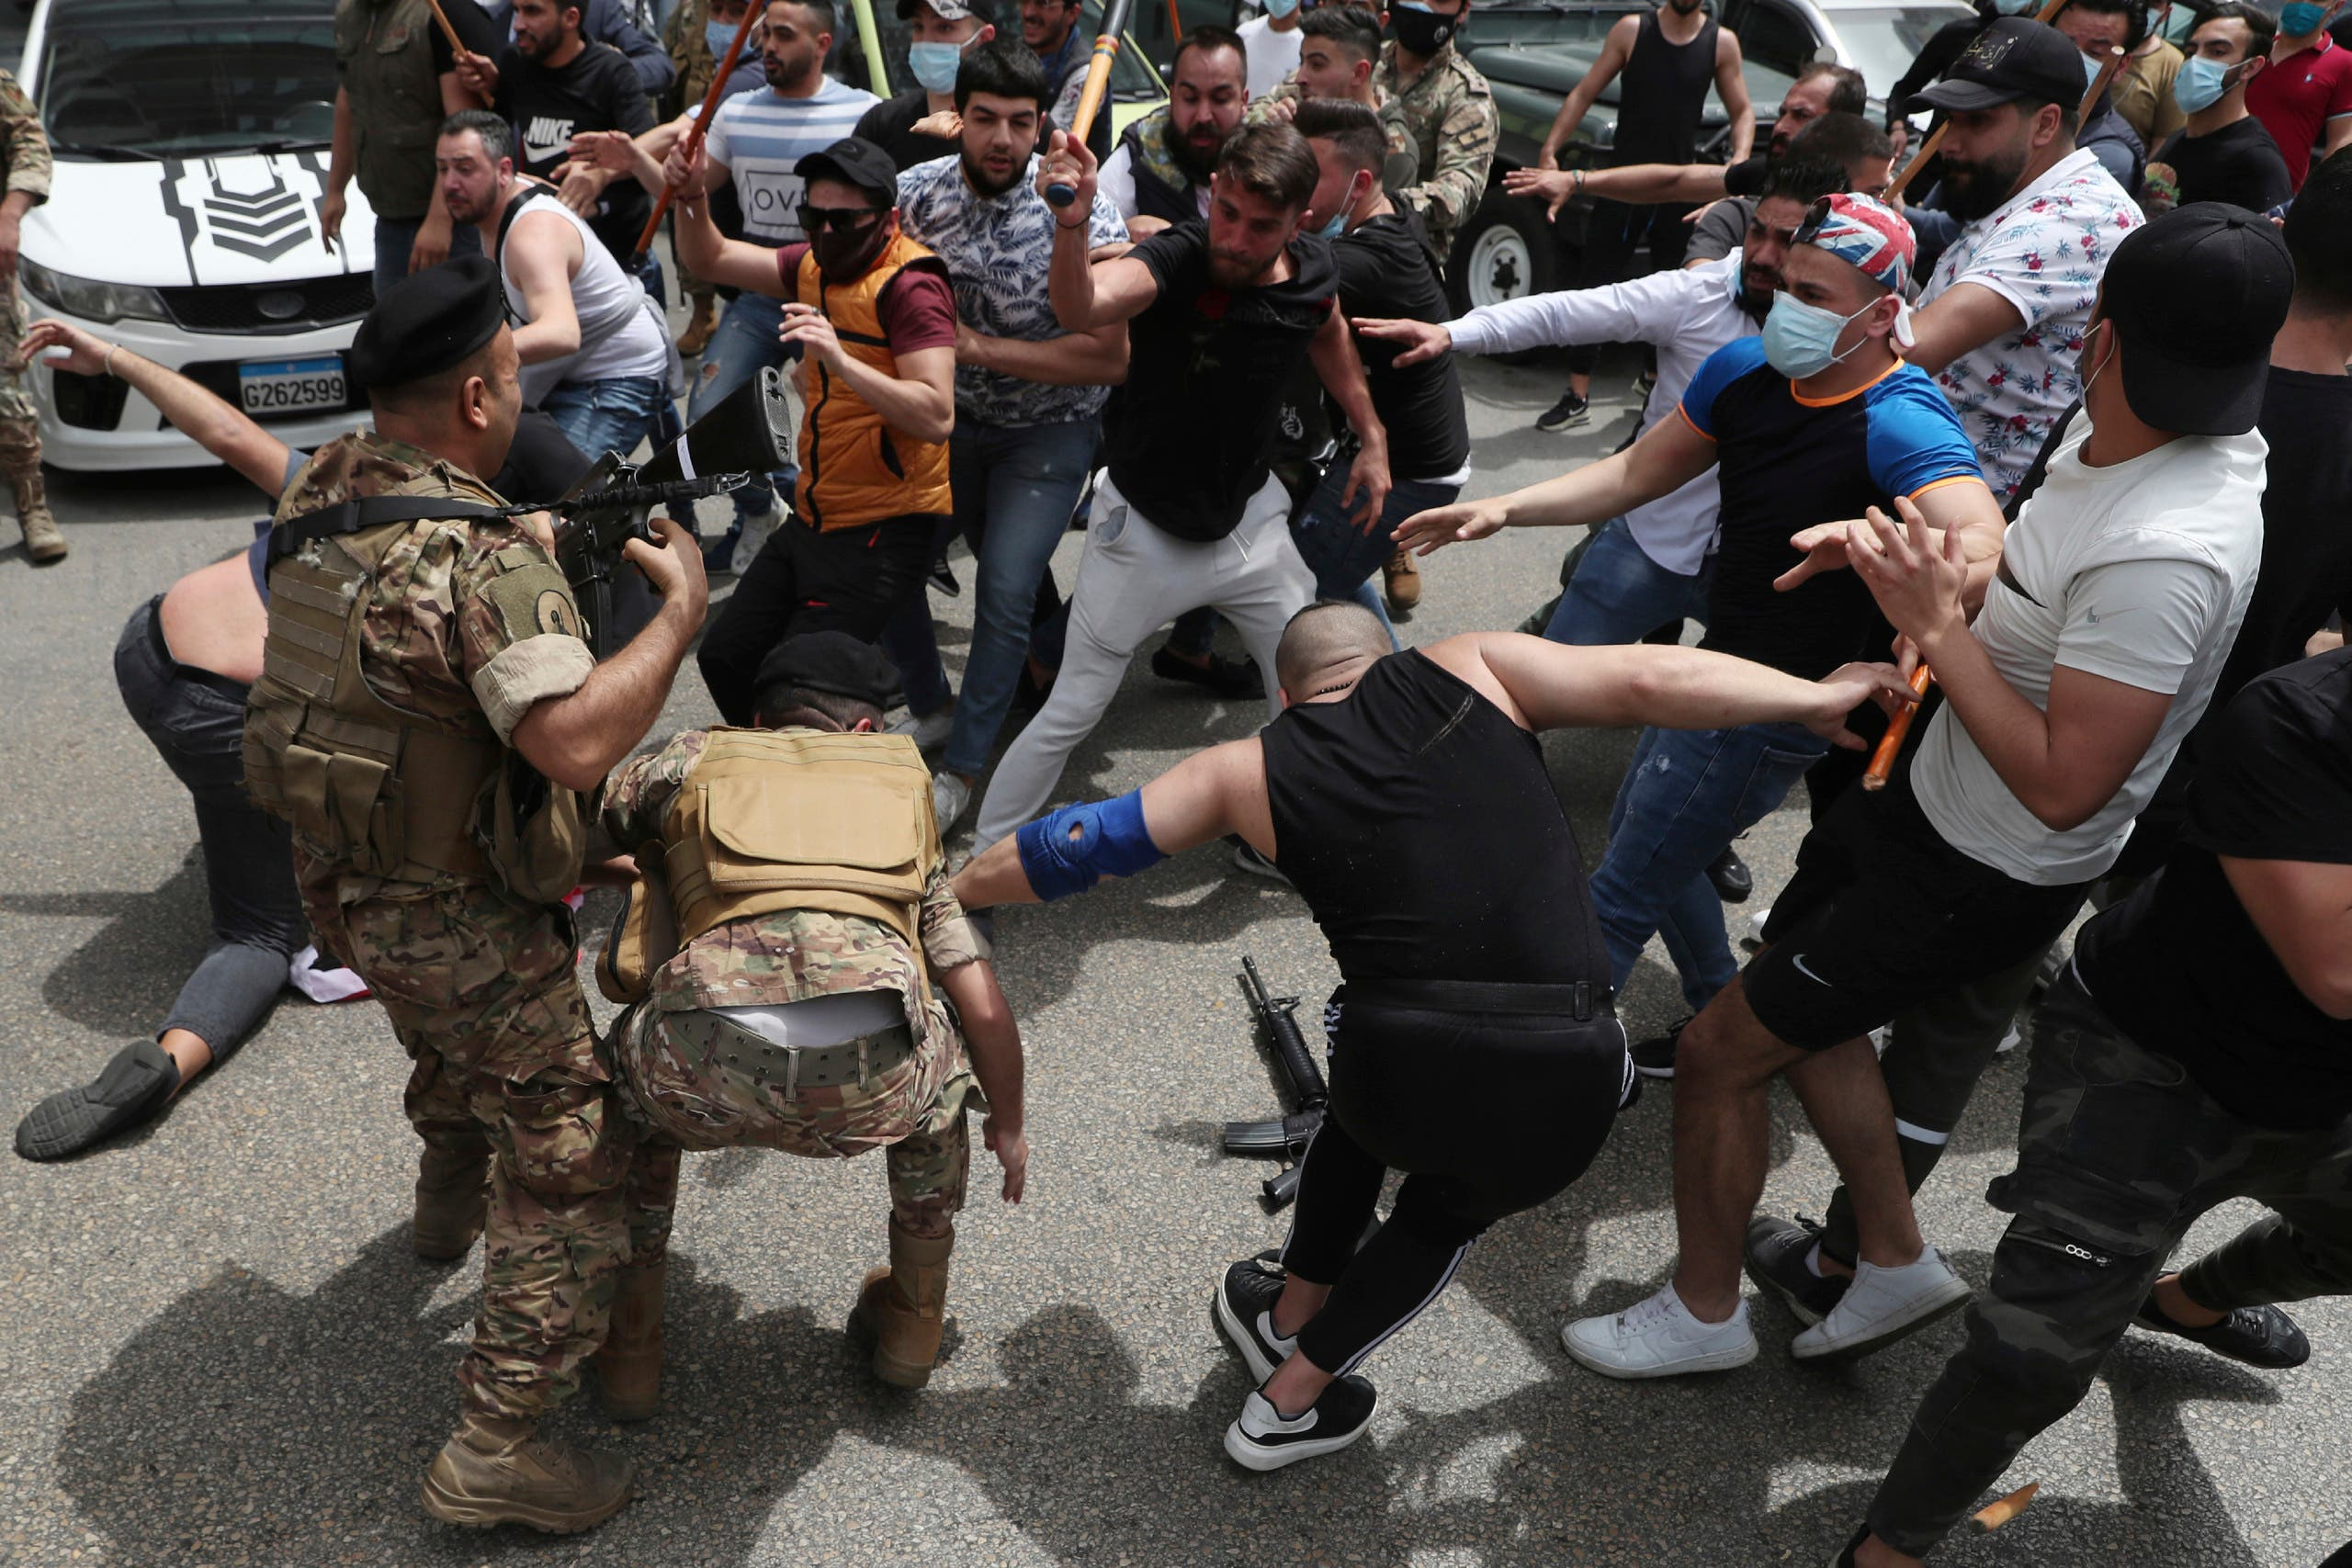 In this April 19, 2021 file photo, opponents of Judge Ghada Aoun try to strip an army soldier of his rifle as scuffles break out during a sit-in outside the Justice Palace, in Beirut, Lebanon. (AP)